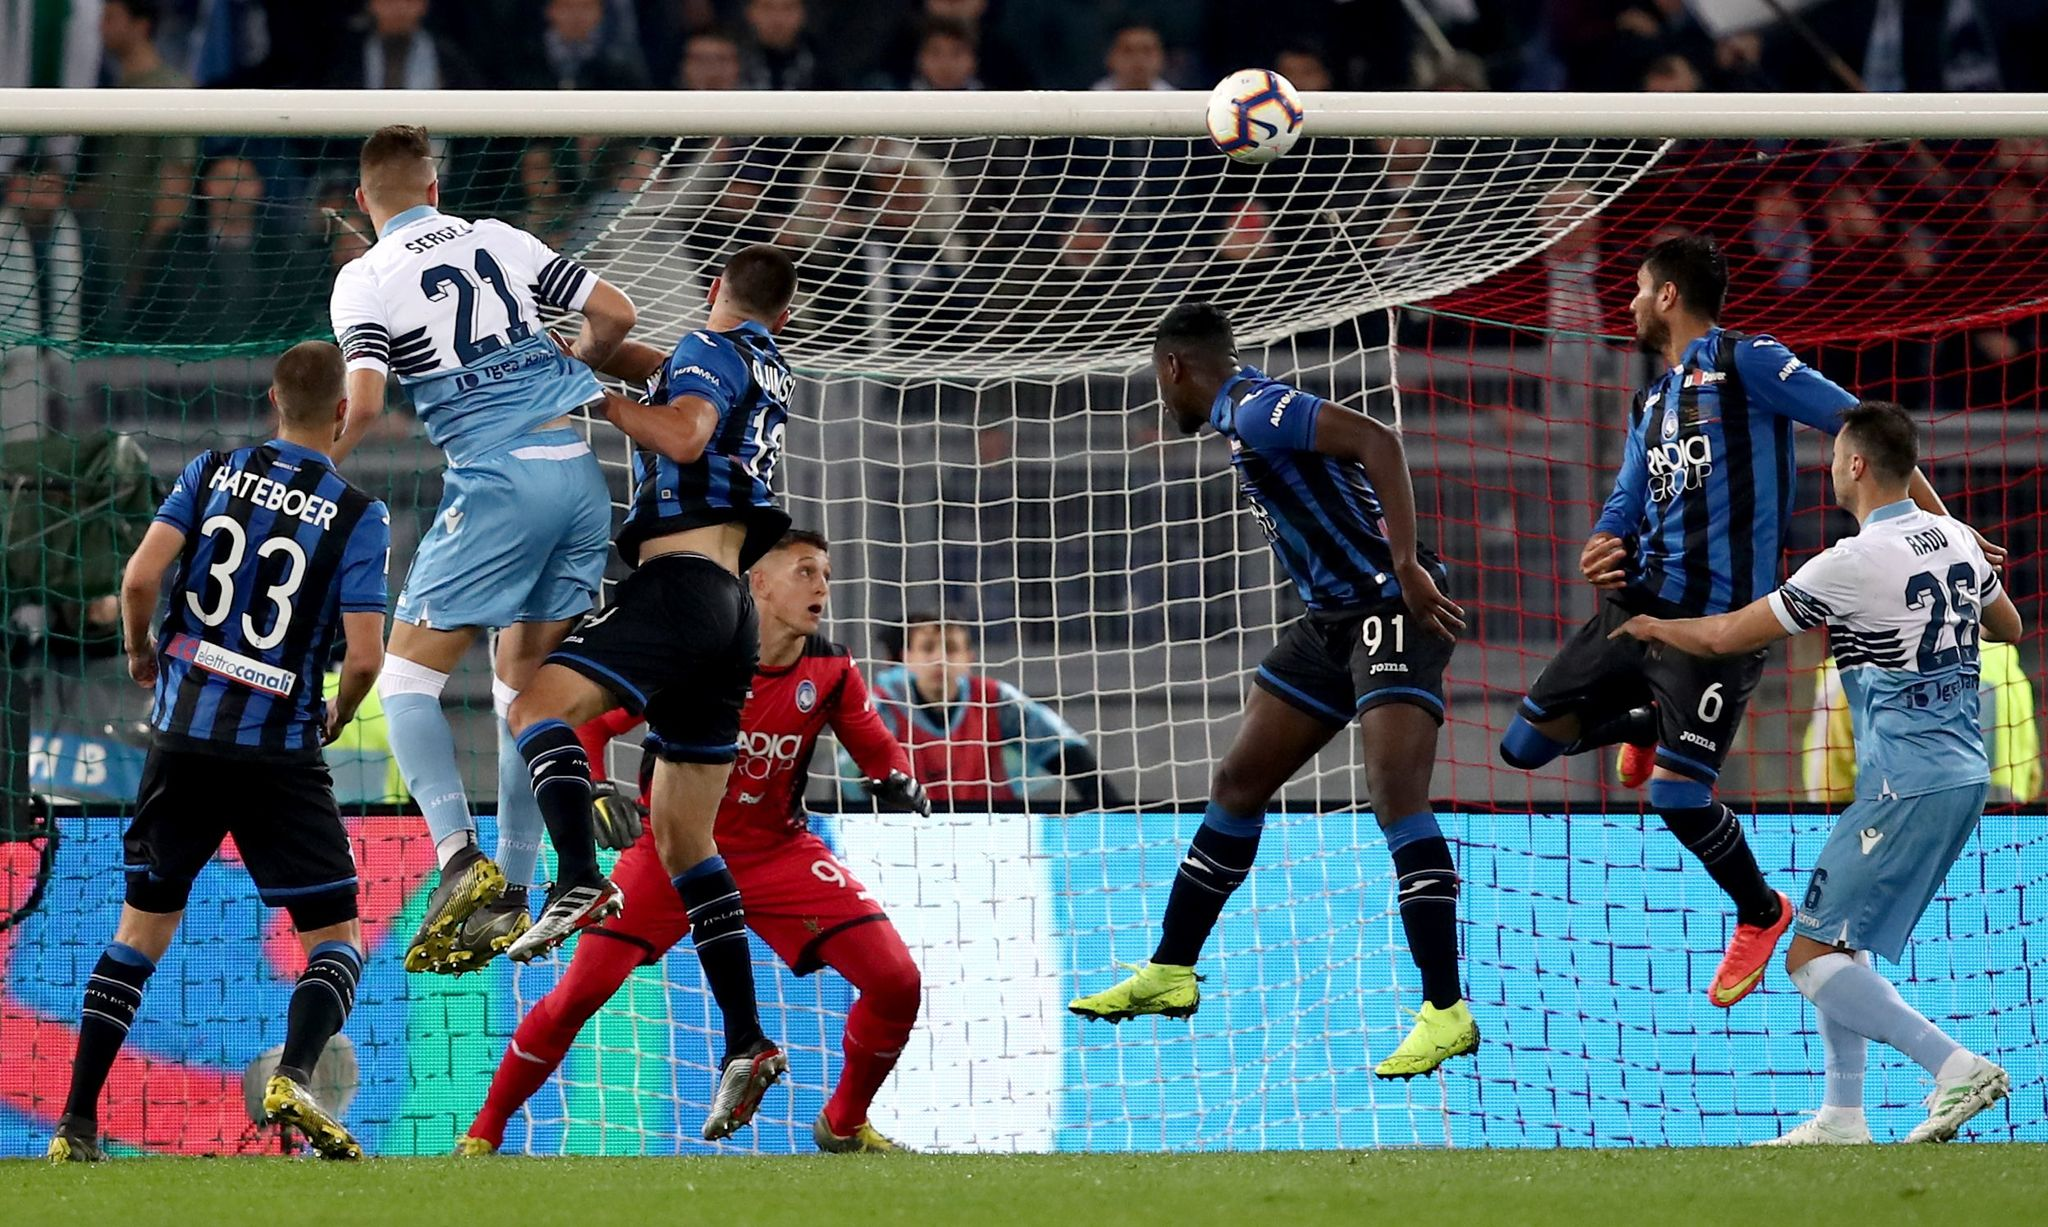 <HIT>Lazio</HIT>s Serbian midfielder Sergej Milinkovic-Savic heads and scores a goal during the Italian Tim Cup final match between <HIT>Lazio</HIT> and Atalanta, on May 15, 2019 at the Olympic Stadium in Rome. (Photo by Isabella BONOTTO / AFP)